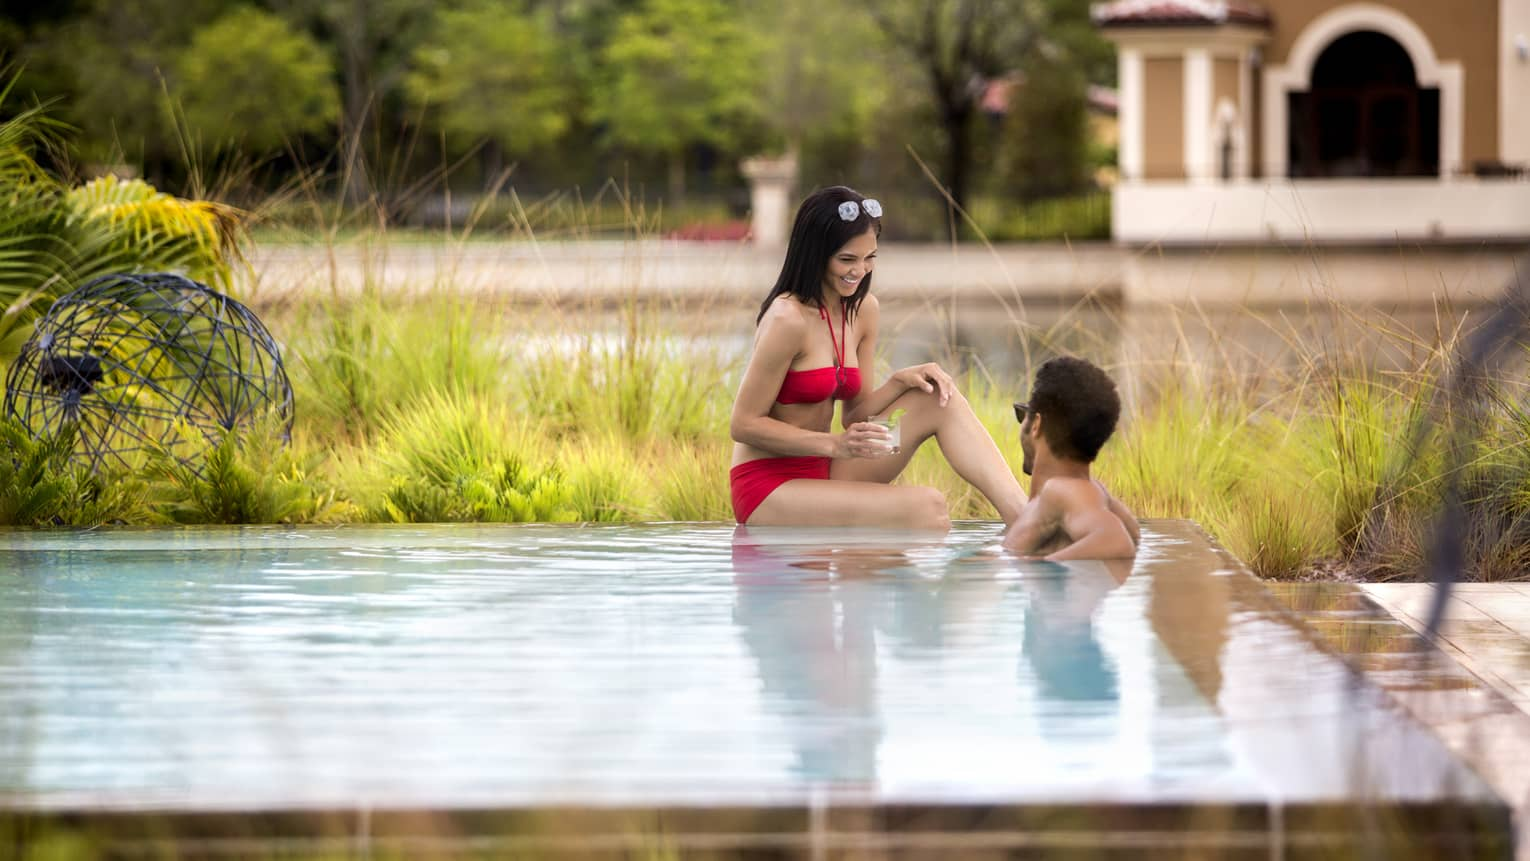 Woman wearing red bikini sits on edge of Adult Pool, made wades in water